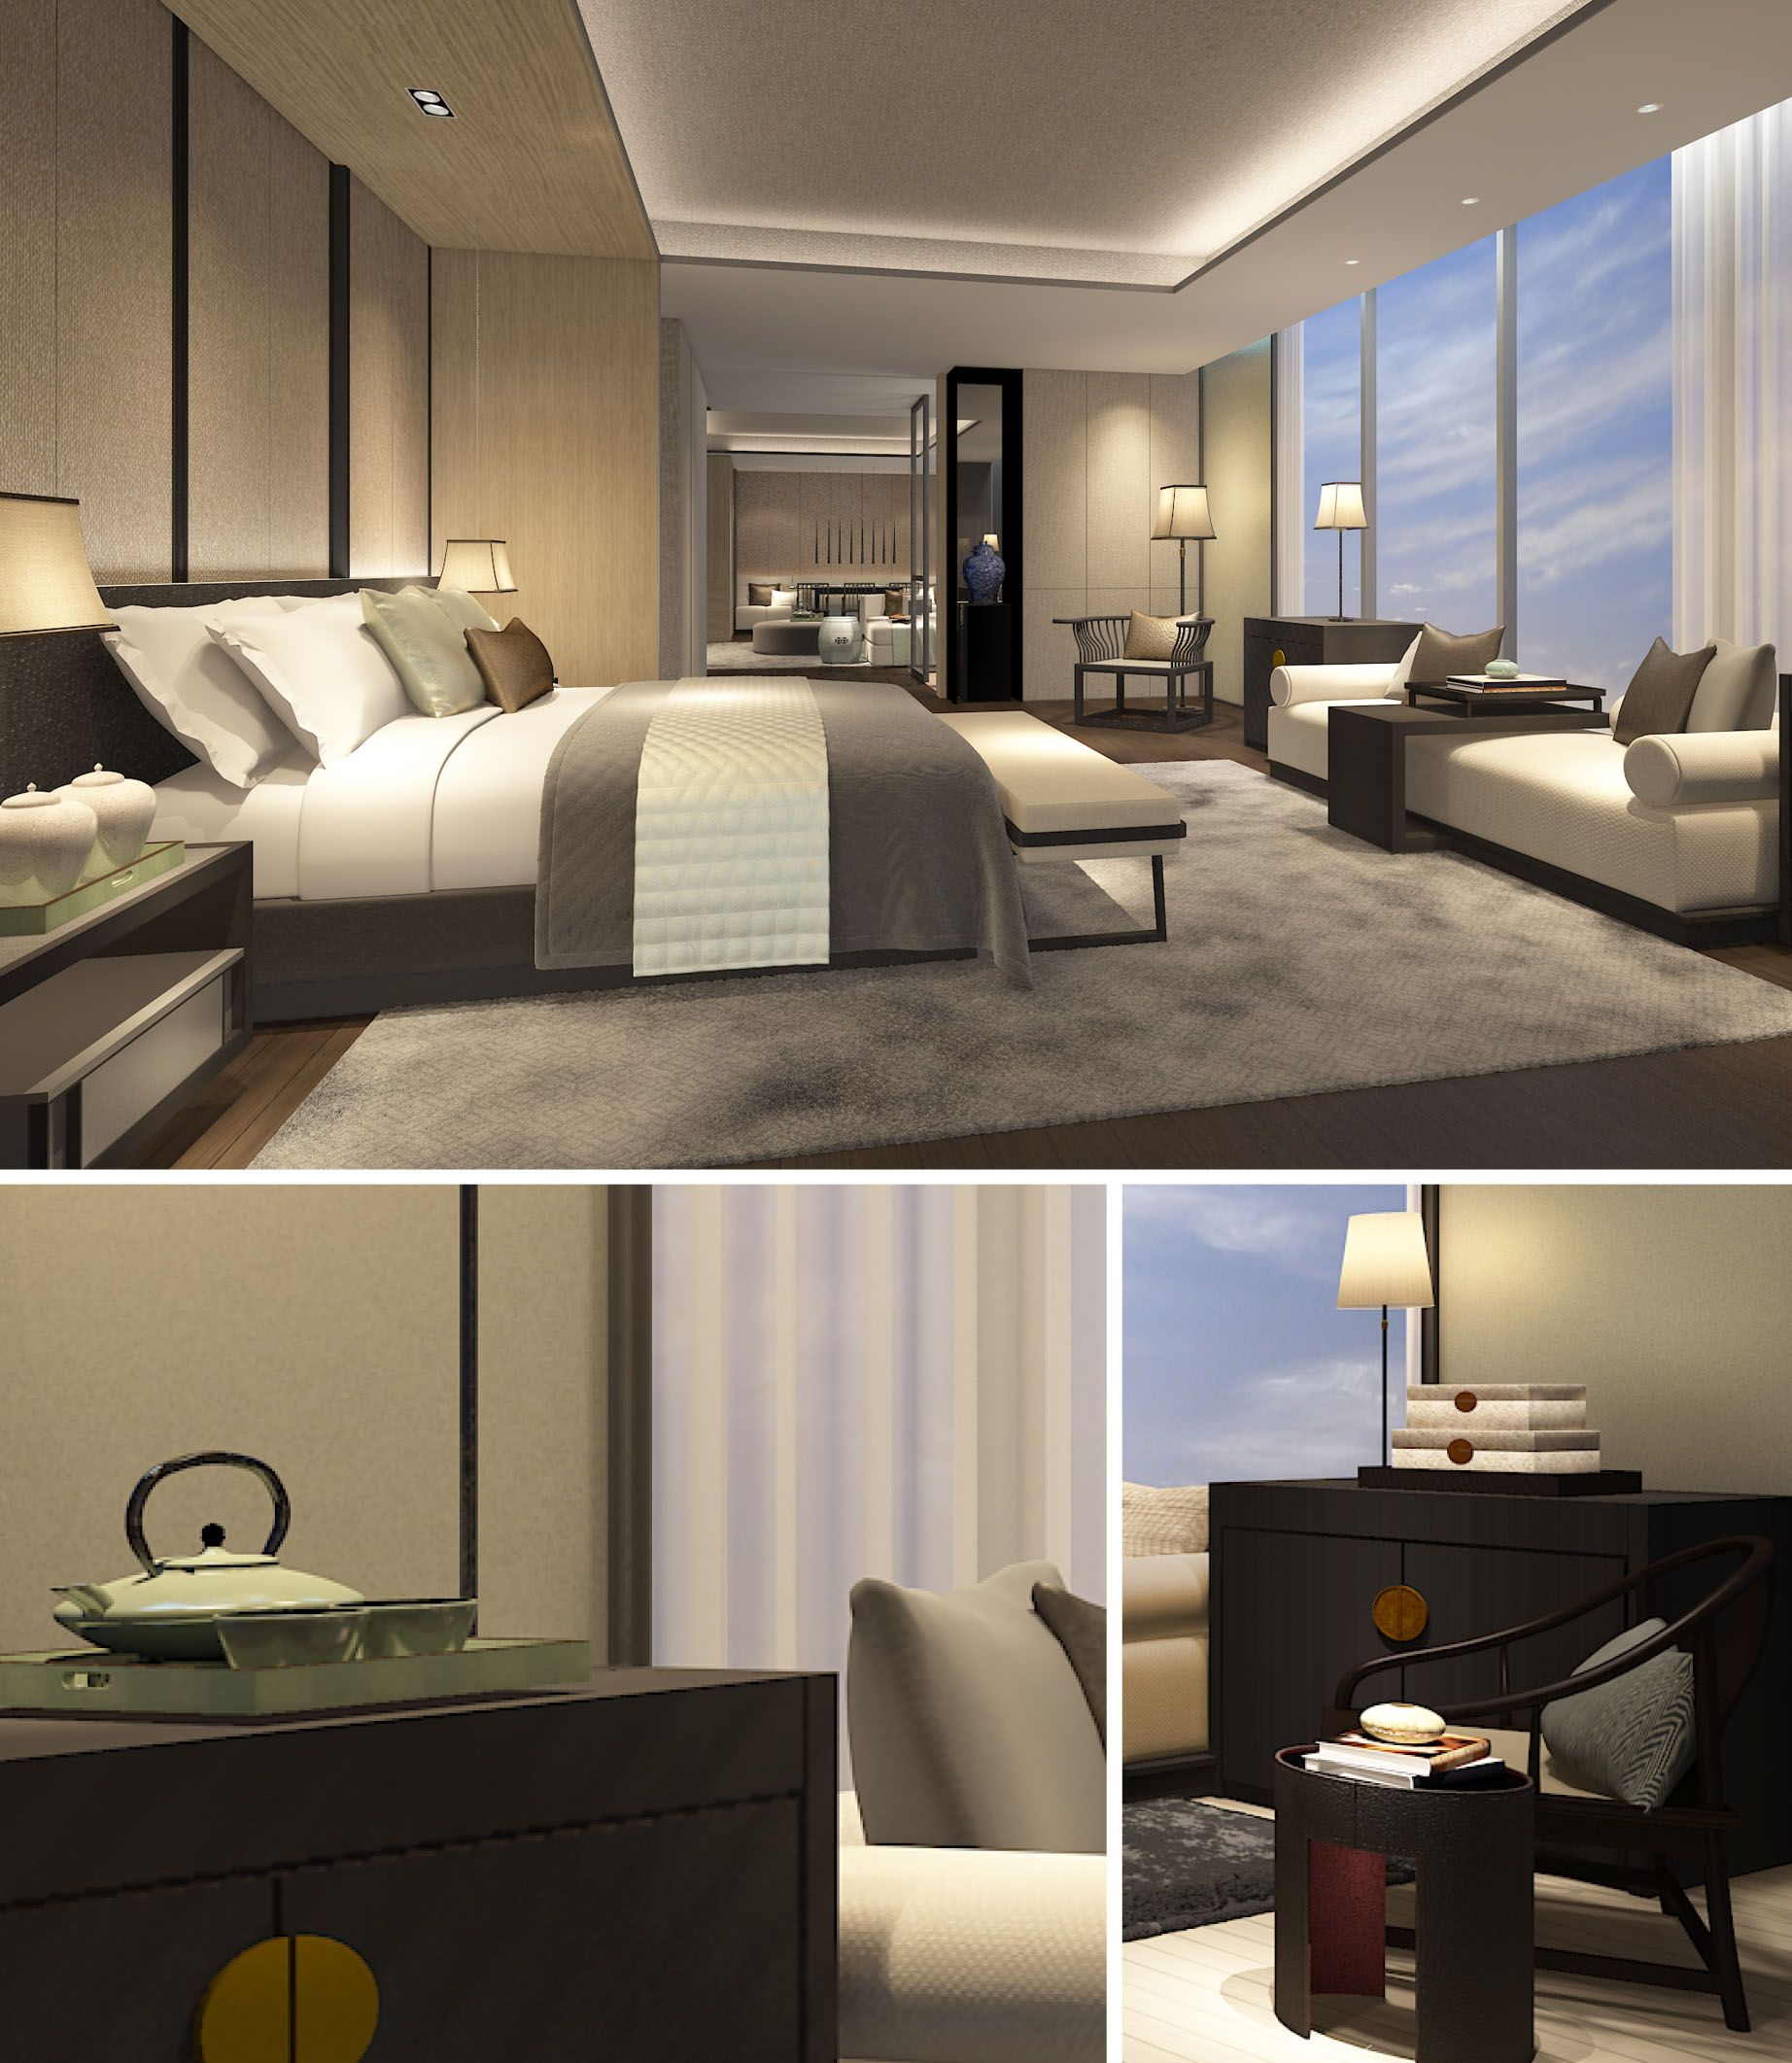 One Bedroom Apartment Layout Ideas Nautical Master Bedroom Decor Luxury Bedroom Lighting Bedroom Ideas Bachelor: SCDA Hotel & Mixed-Use Development, Nanjing, China